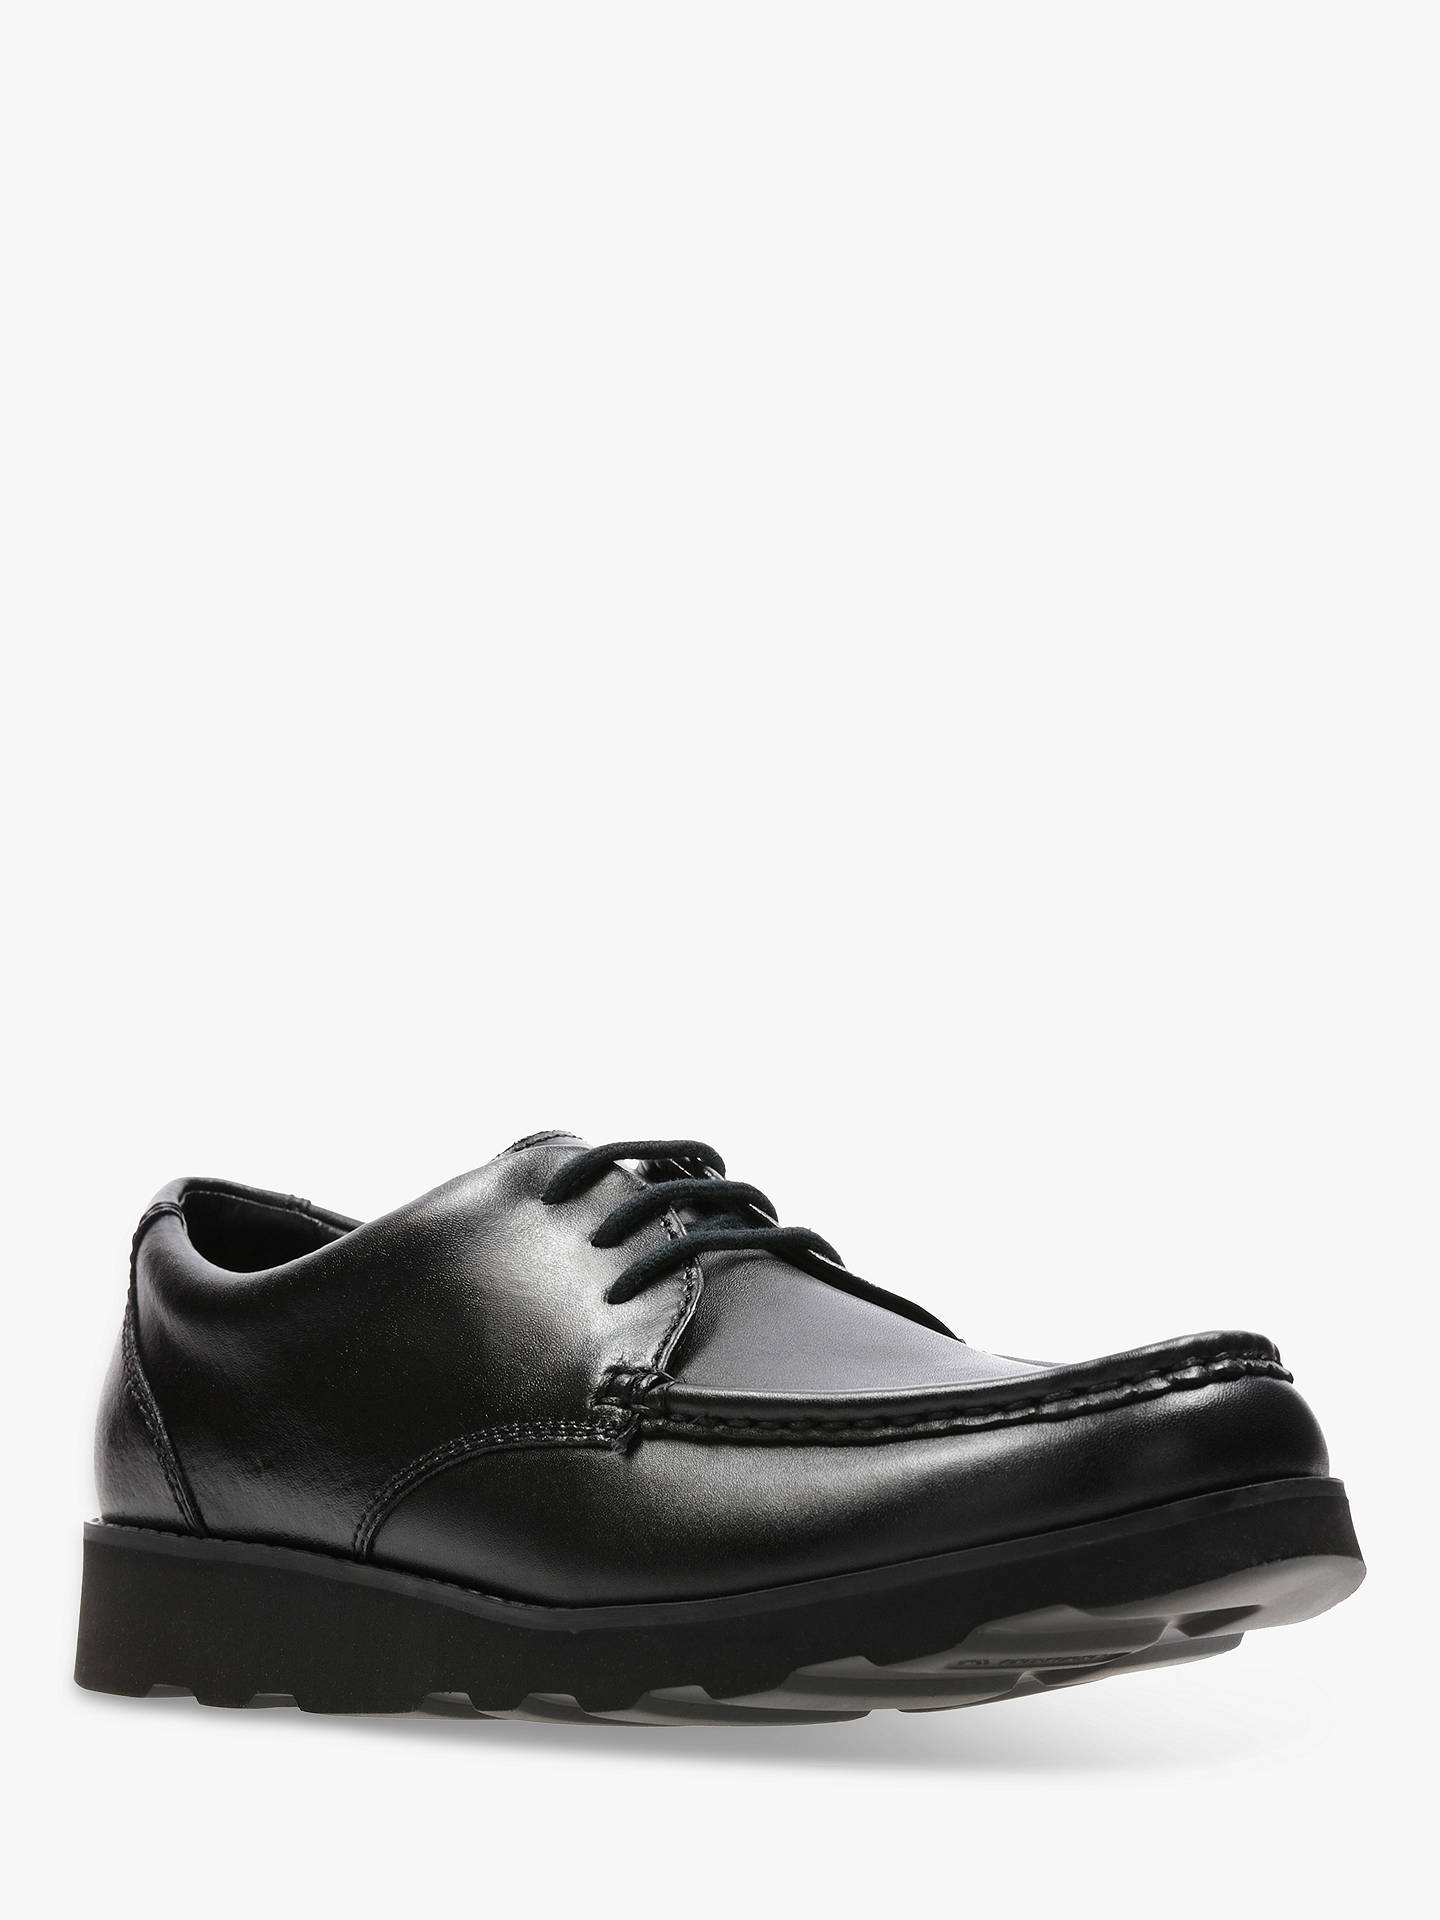 e03309fa153 Buy Clarks Children's Crown Tate Leather Shoes, Black, 3F Online at  johnlewis. ...